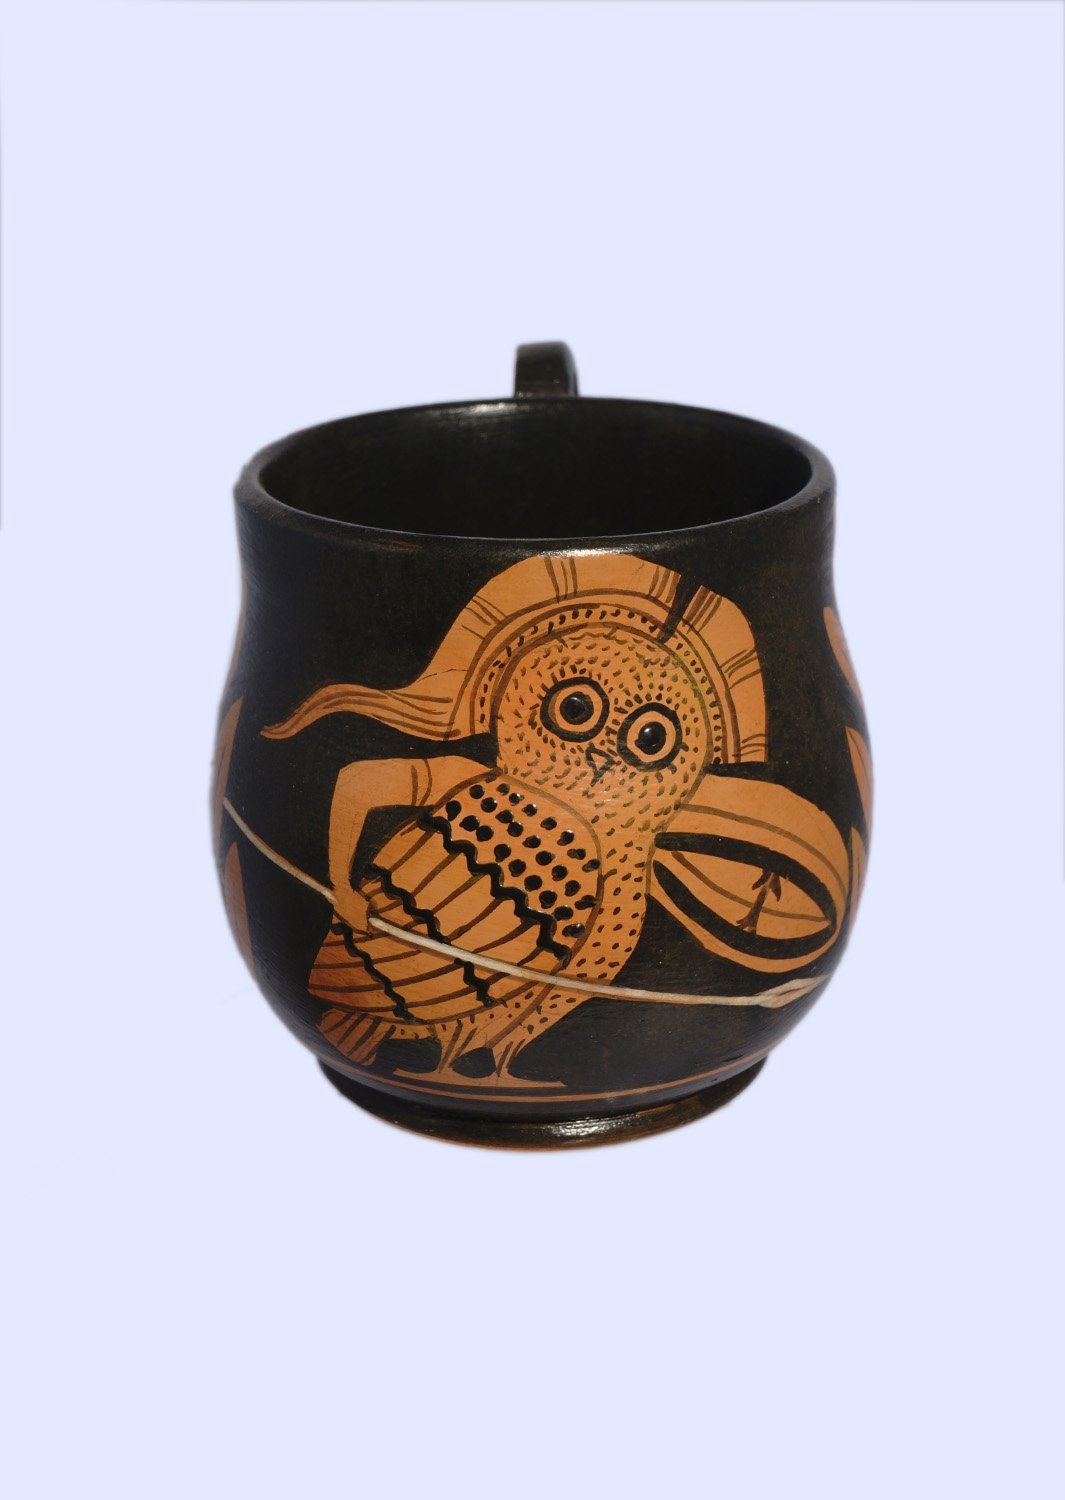 Classical red-figure one-handled skyphos (cup) with an owl, symbol of wisdom